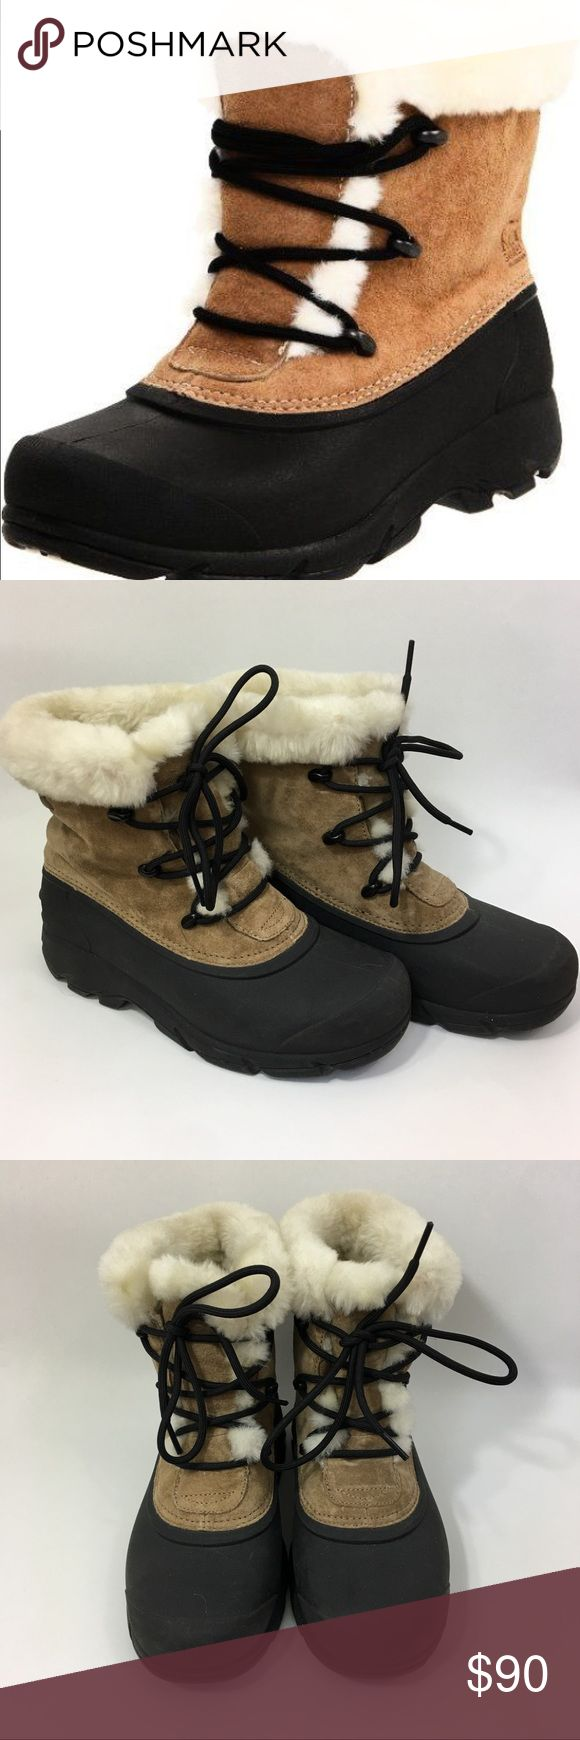 Sorel Snow Angel Lace Up Tan Winter Boots Sorel snow angel Lace up winter snow boots in root beer color. Worn once or twice. Size 7. Waterproof Suede. Faux fur lined. Very warm. Excellent like new condition. Sorel Shoes Winter & Rain Boots